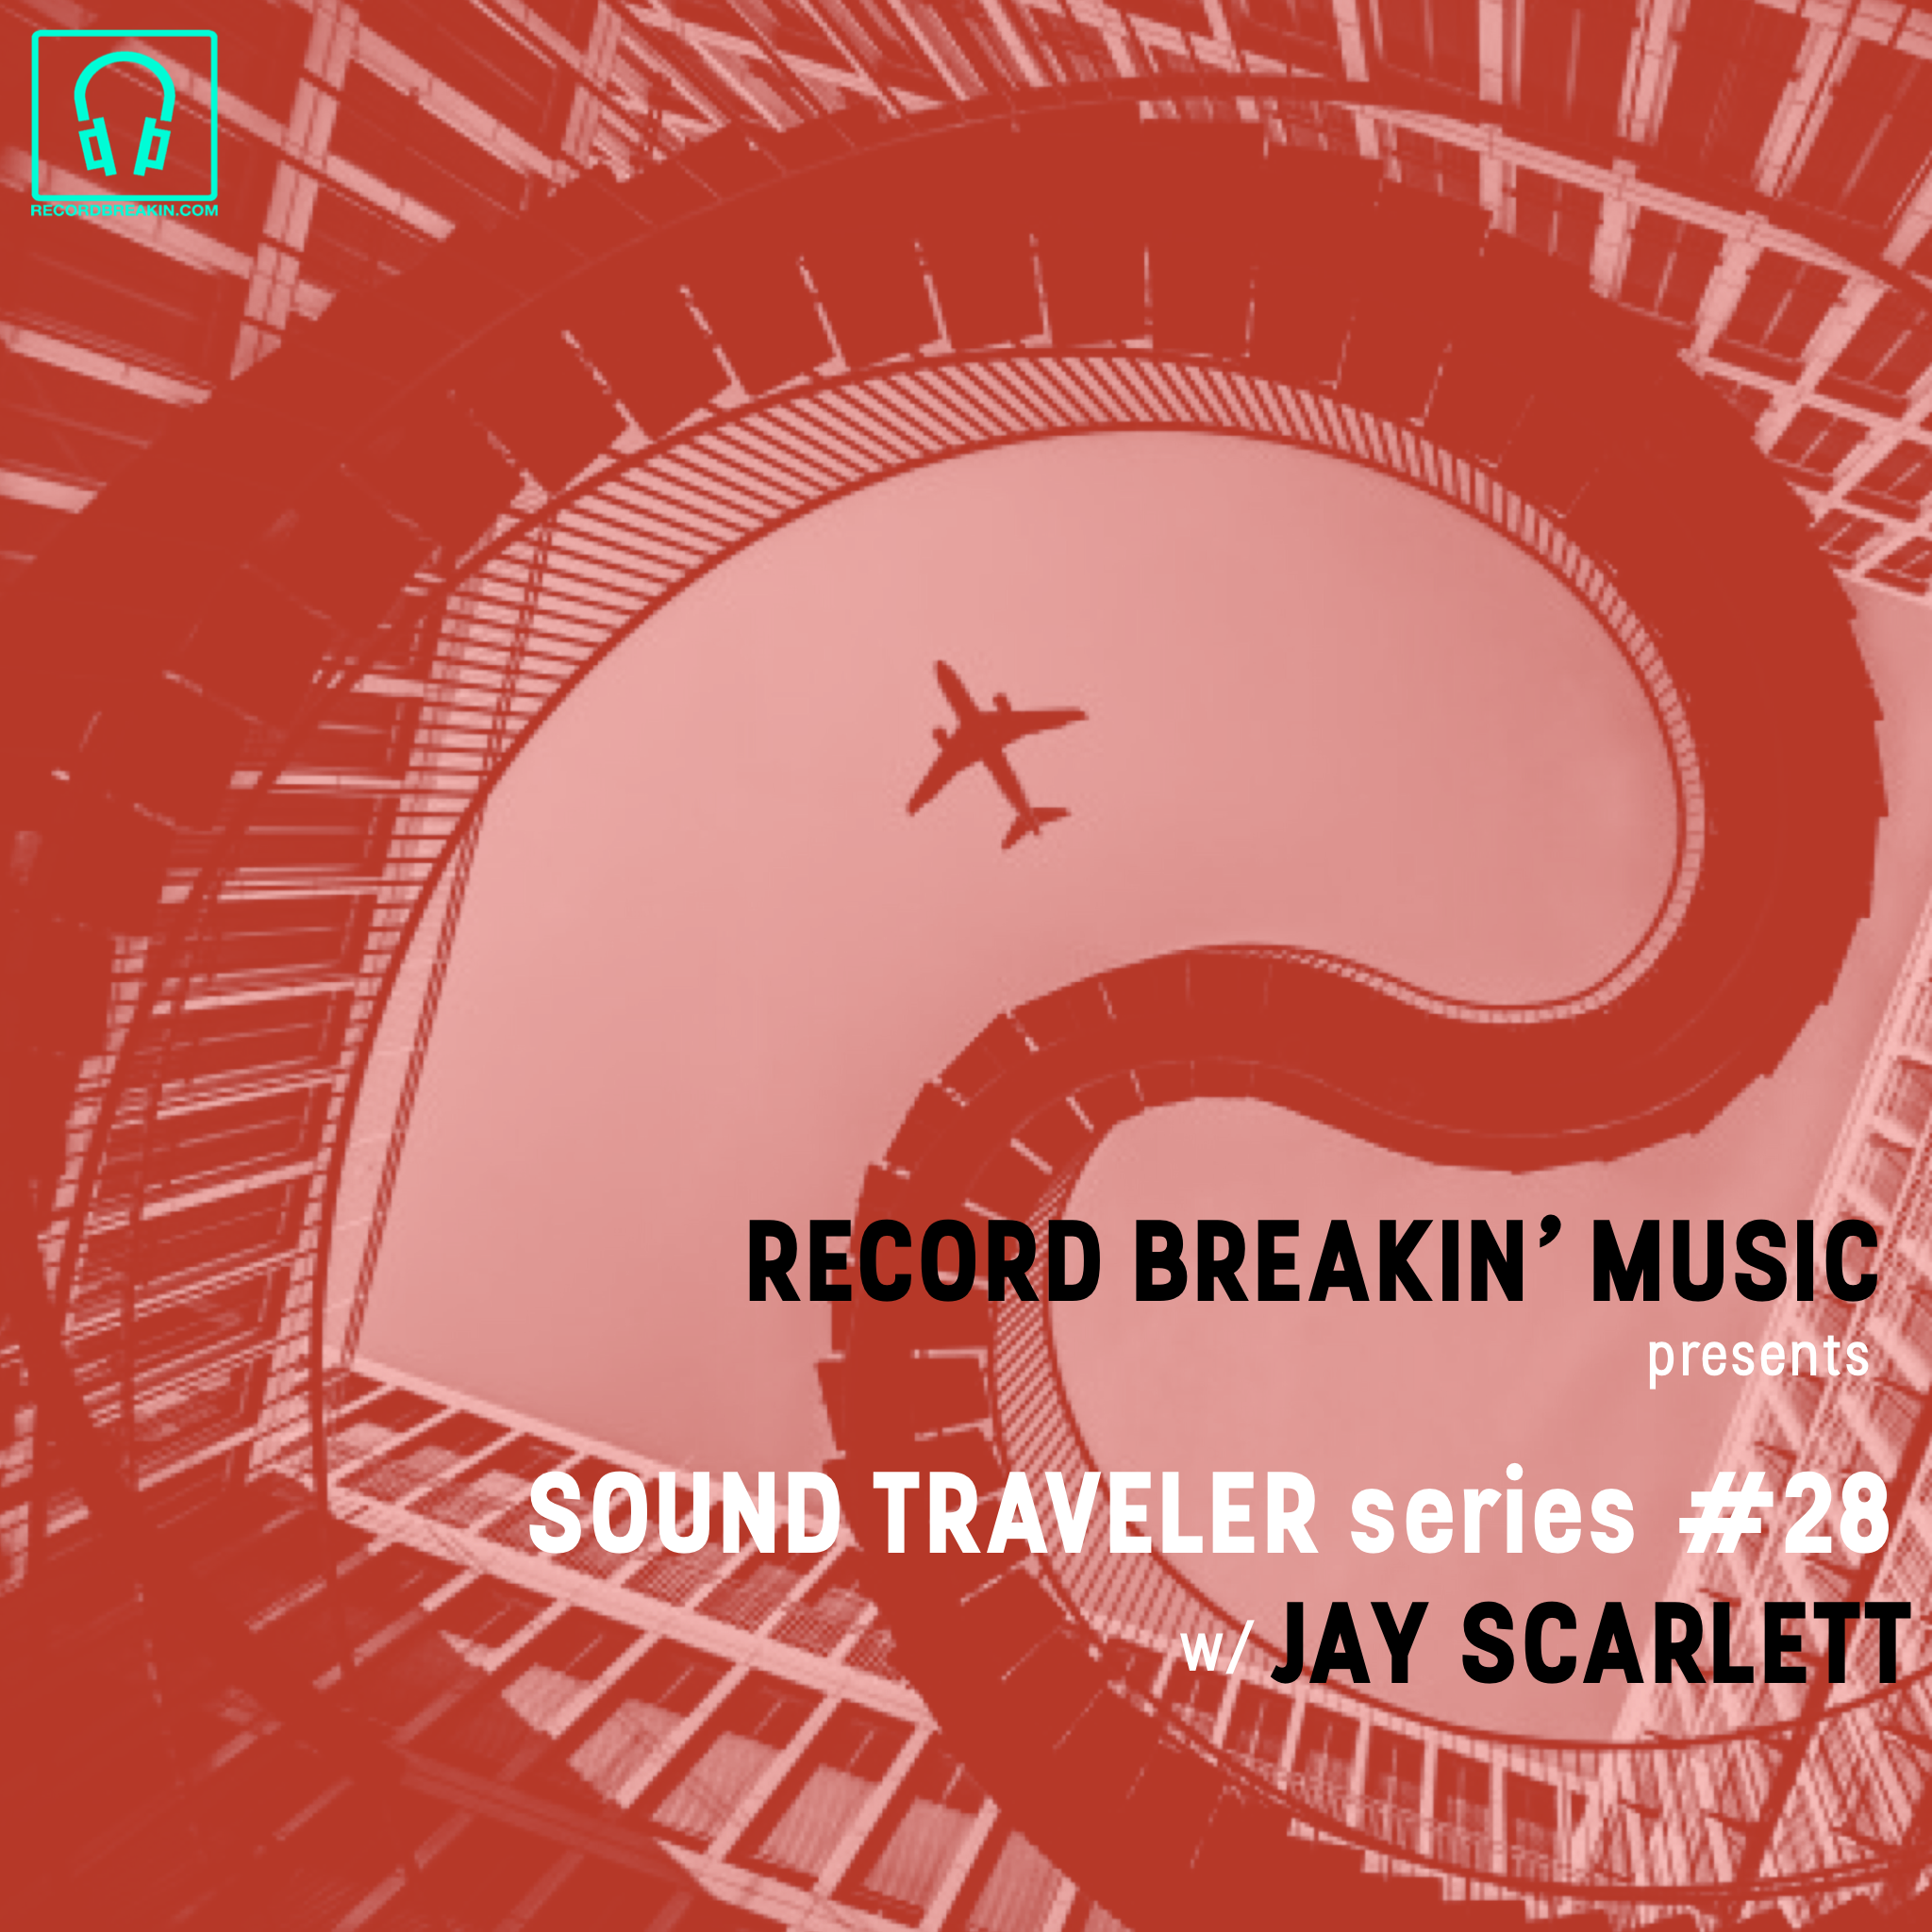 Mix — Blog — Record Breakin' Music